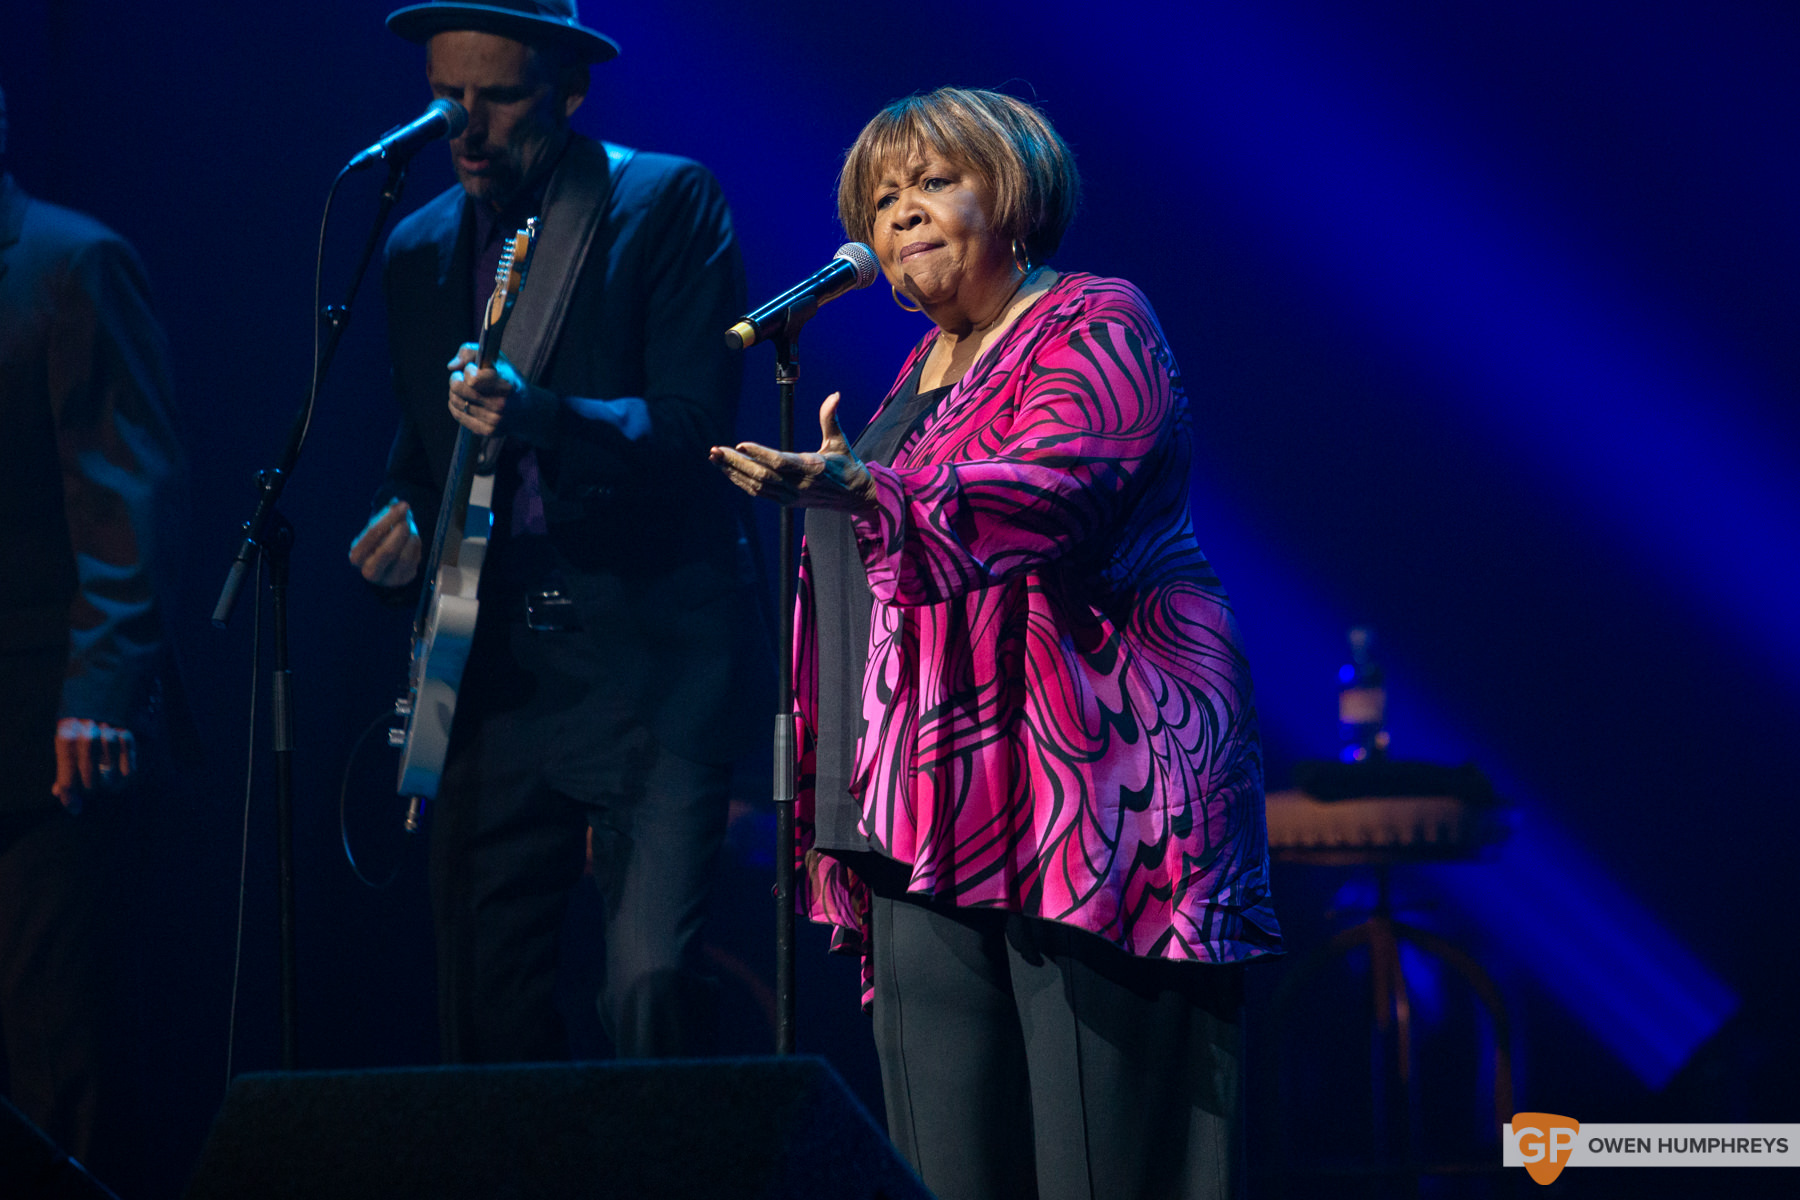 Mavis Staples at The Olympia Theatre. Photo by Owen Humphreys. www.owen.ie